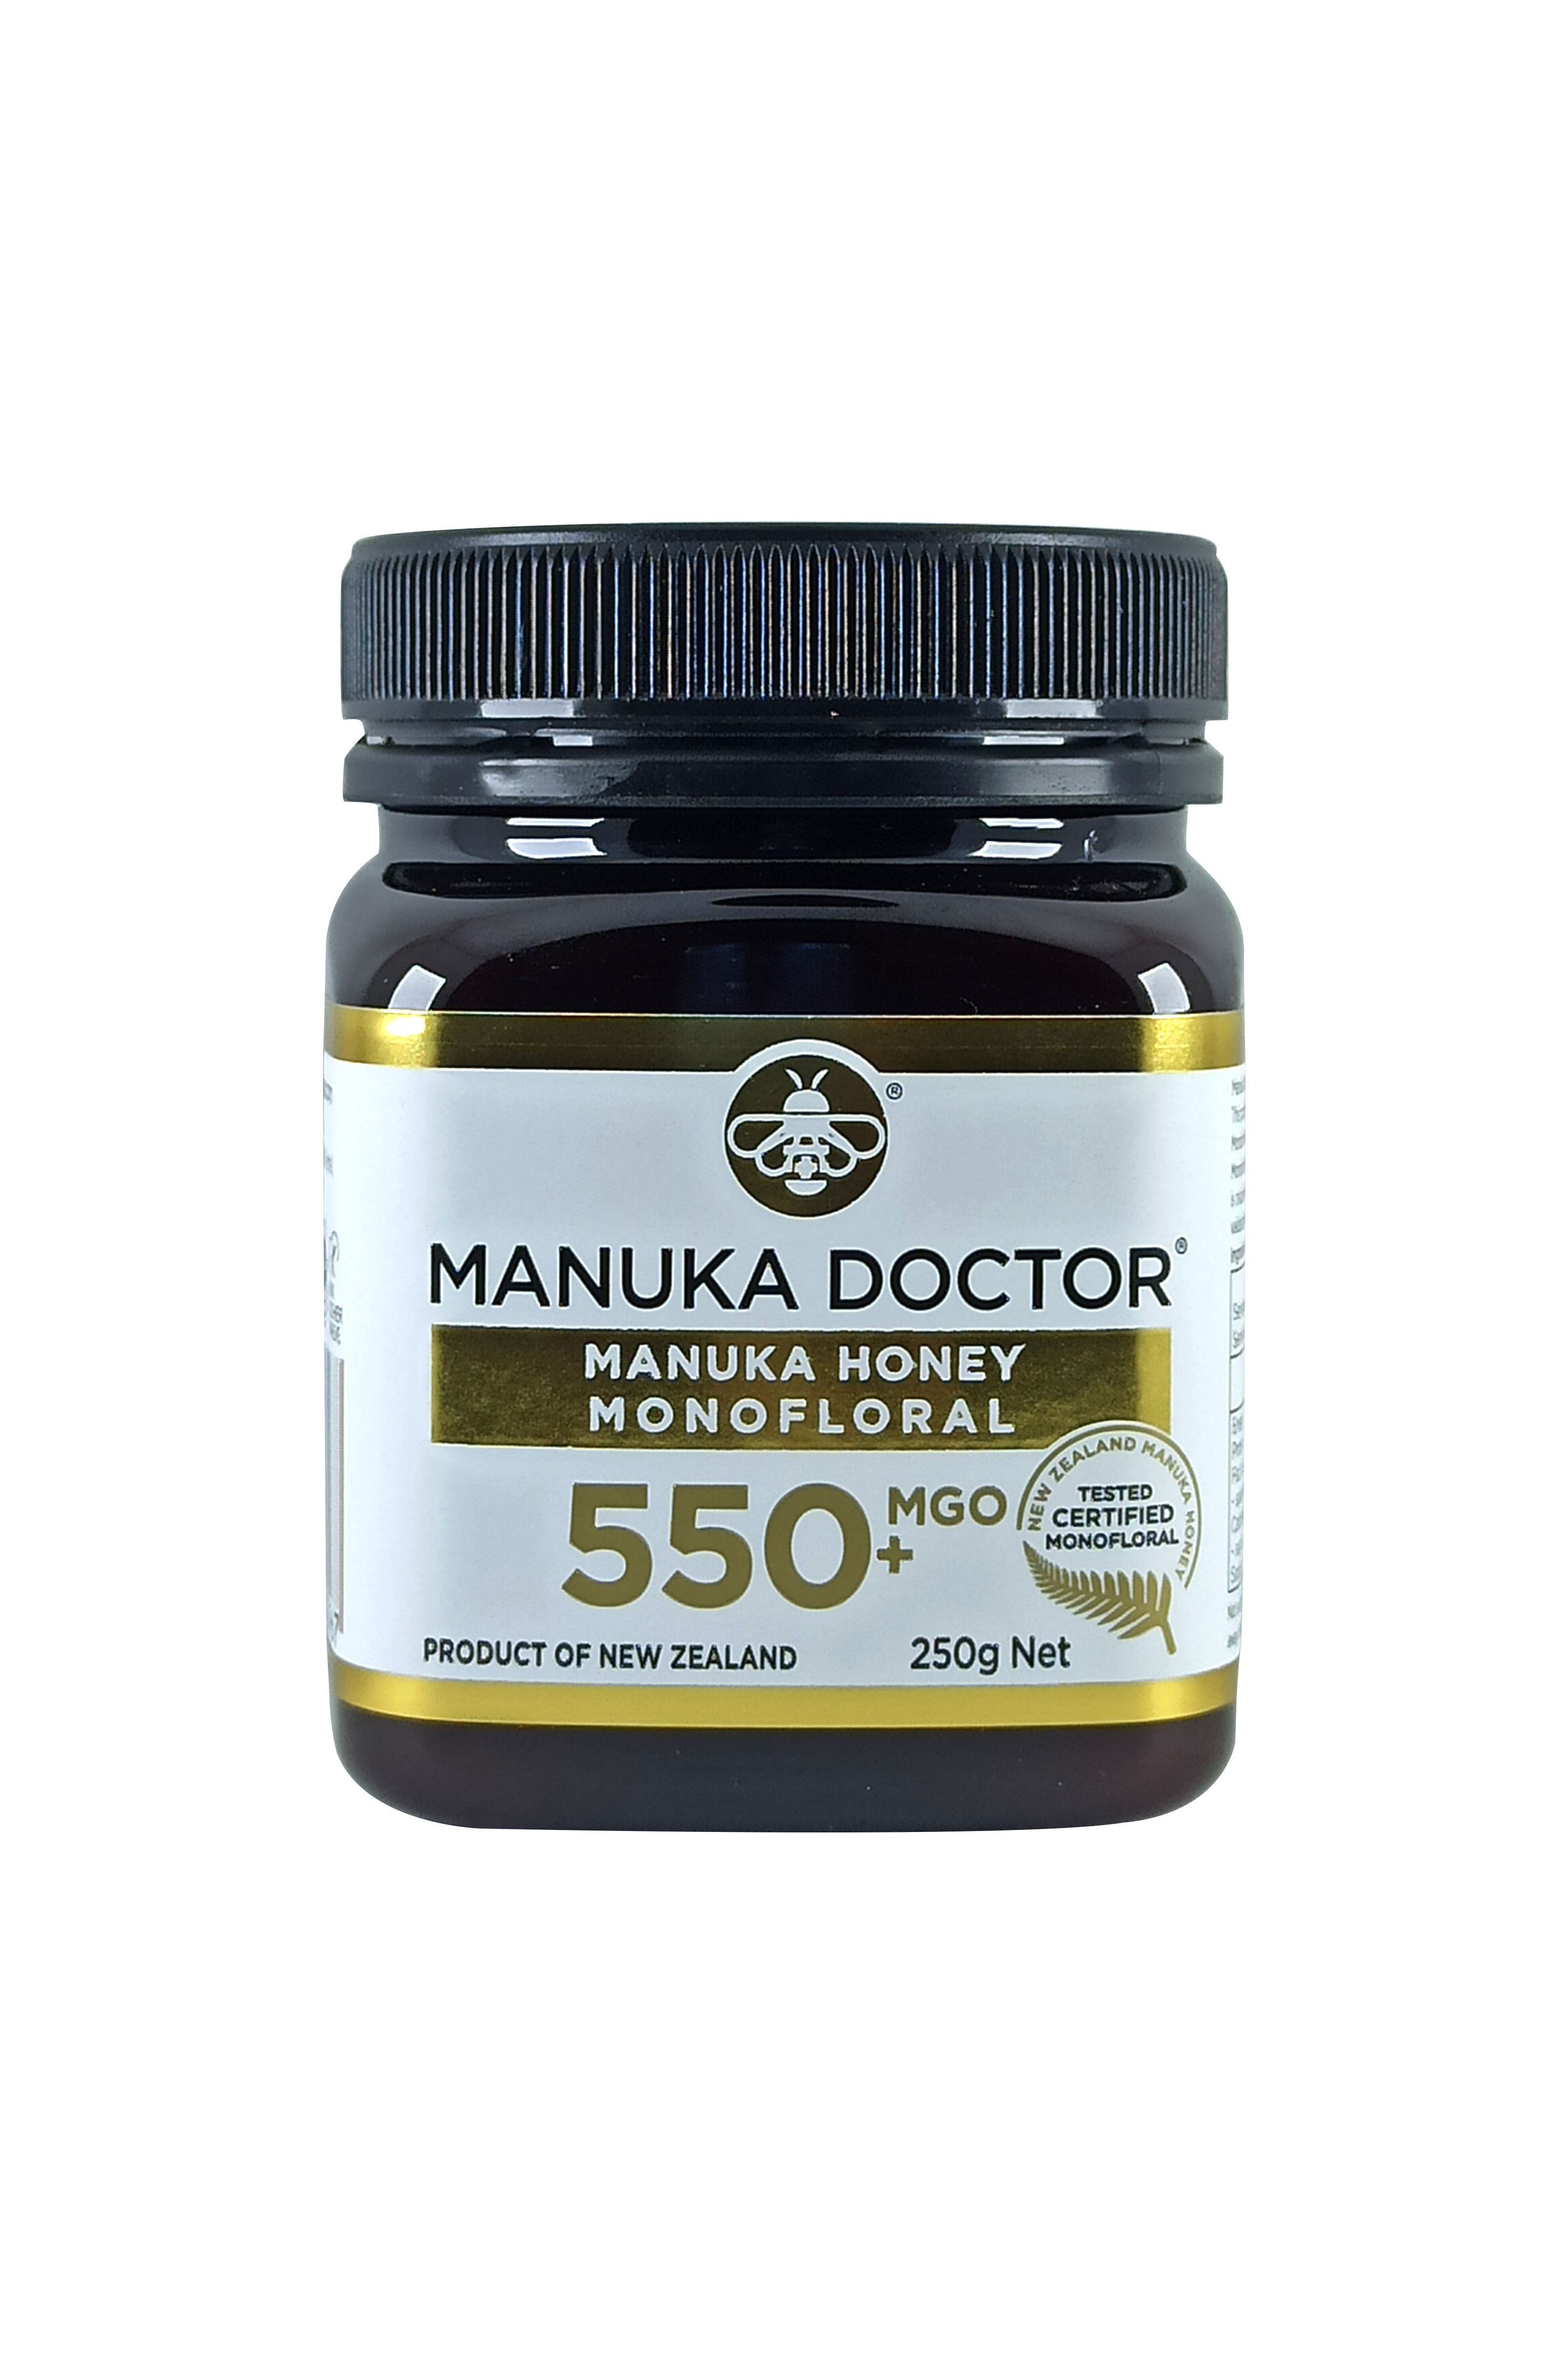 Manuka Doctor MGO 550+ Manuka Honey Monofloral 250gr